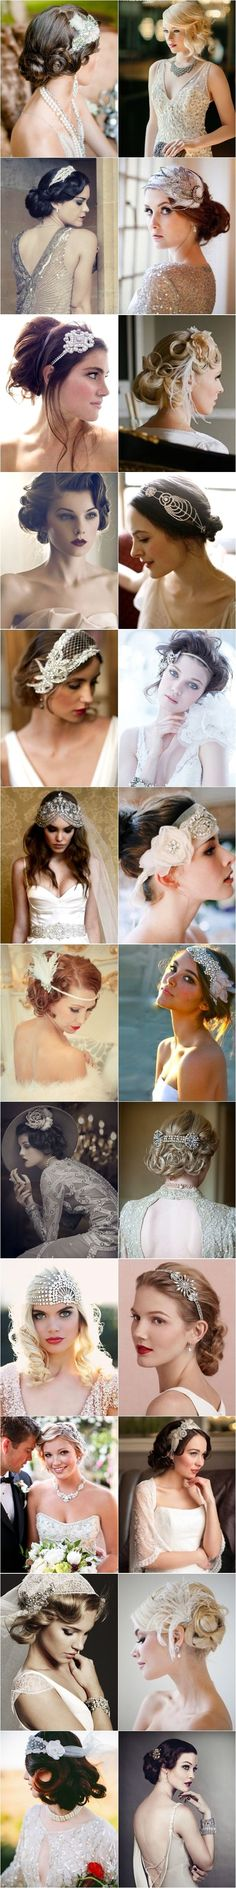 """Wedding Philippines - Gatsby Glam Inspired Hairstyles"" Tons of ideas for our hair for your future Gatsby-themed wedding! Lol Wedding Philippines - Gatsby Glam Inspired Hairstyles Tons of ideas for our hair for your future Gatsby-themed wedding! Gatsby Wedding, Glamorous Wedding, Wedding Updo, Wedding Vintage, Trendy Wedding, Perfect Wedding, Wedding Posing, Tipi Wedding, Wedding Bride"